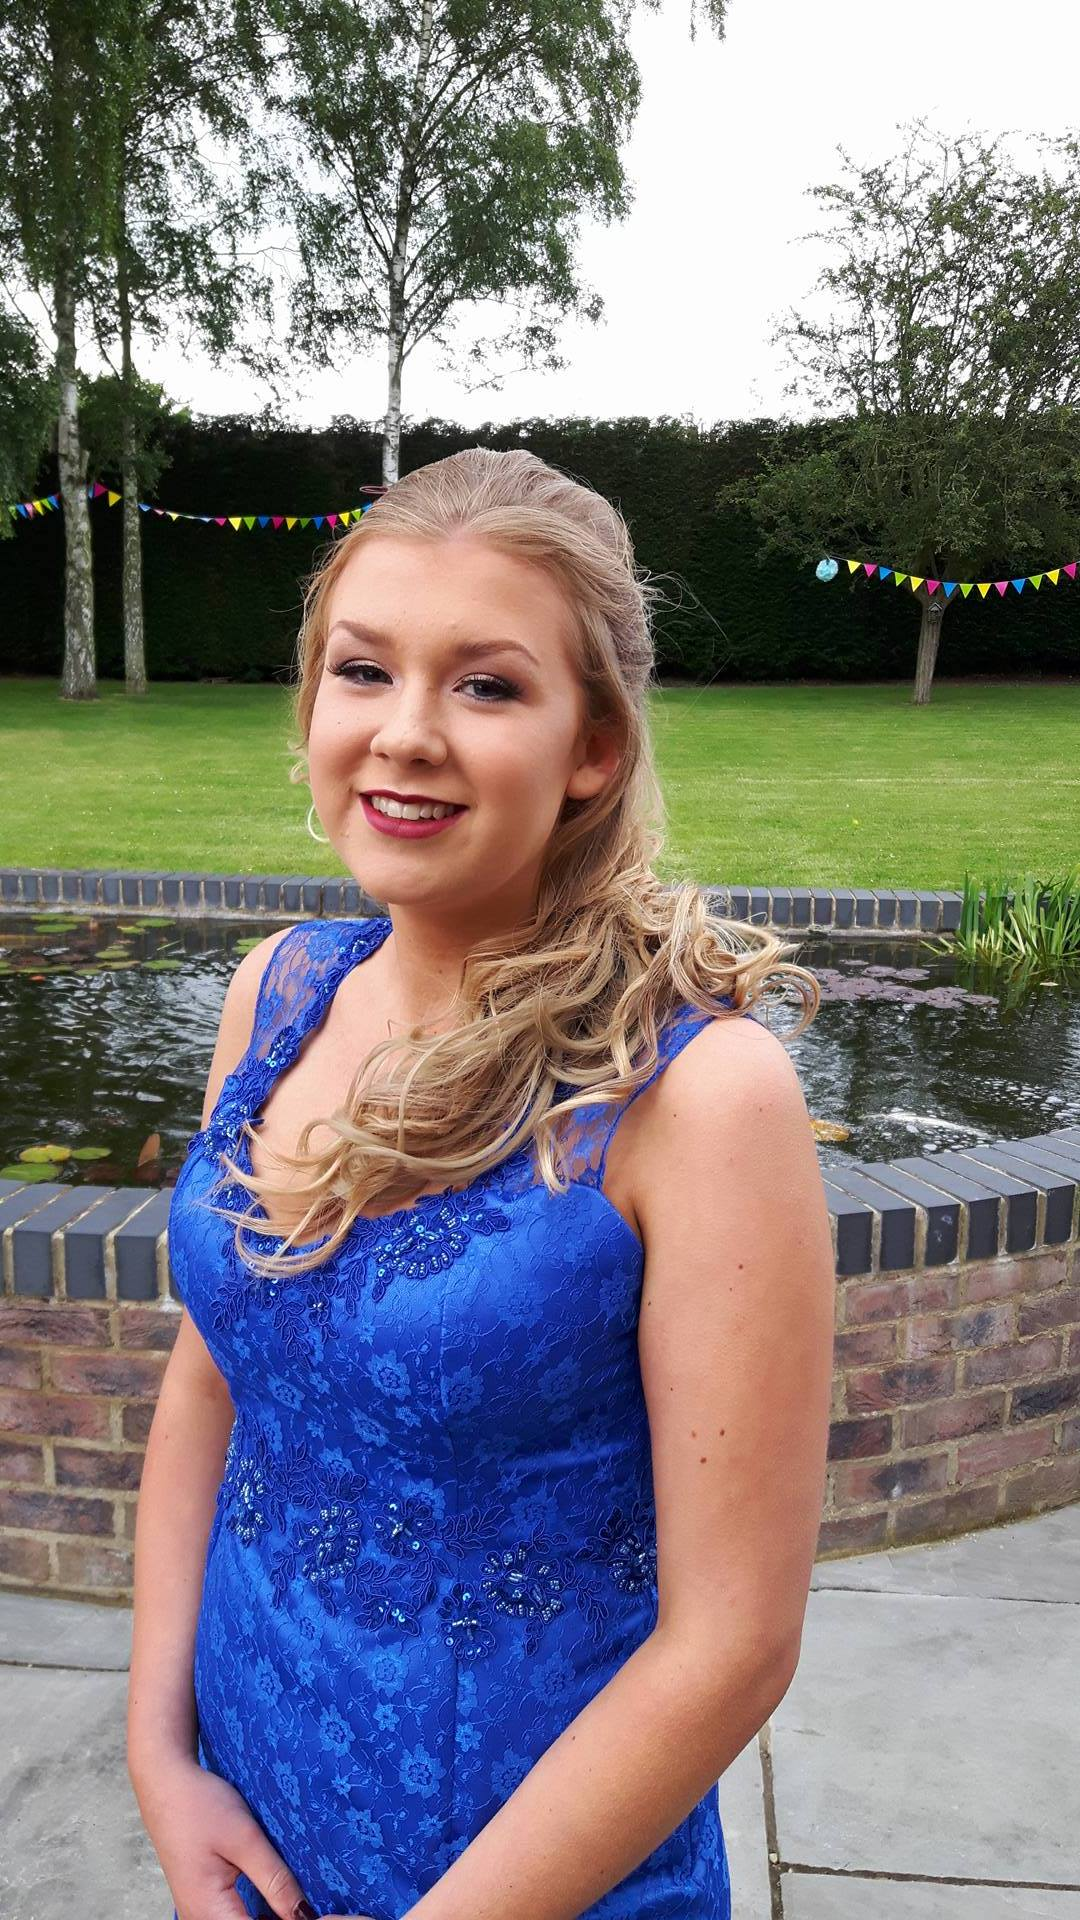 So glad we chose Sophie to design and make my daughter's prom dress. It's been an absolute pleasure from start to finish. Can't wait for prom day! Highly recommended.